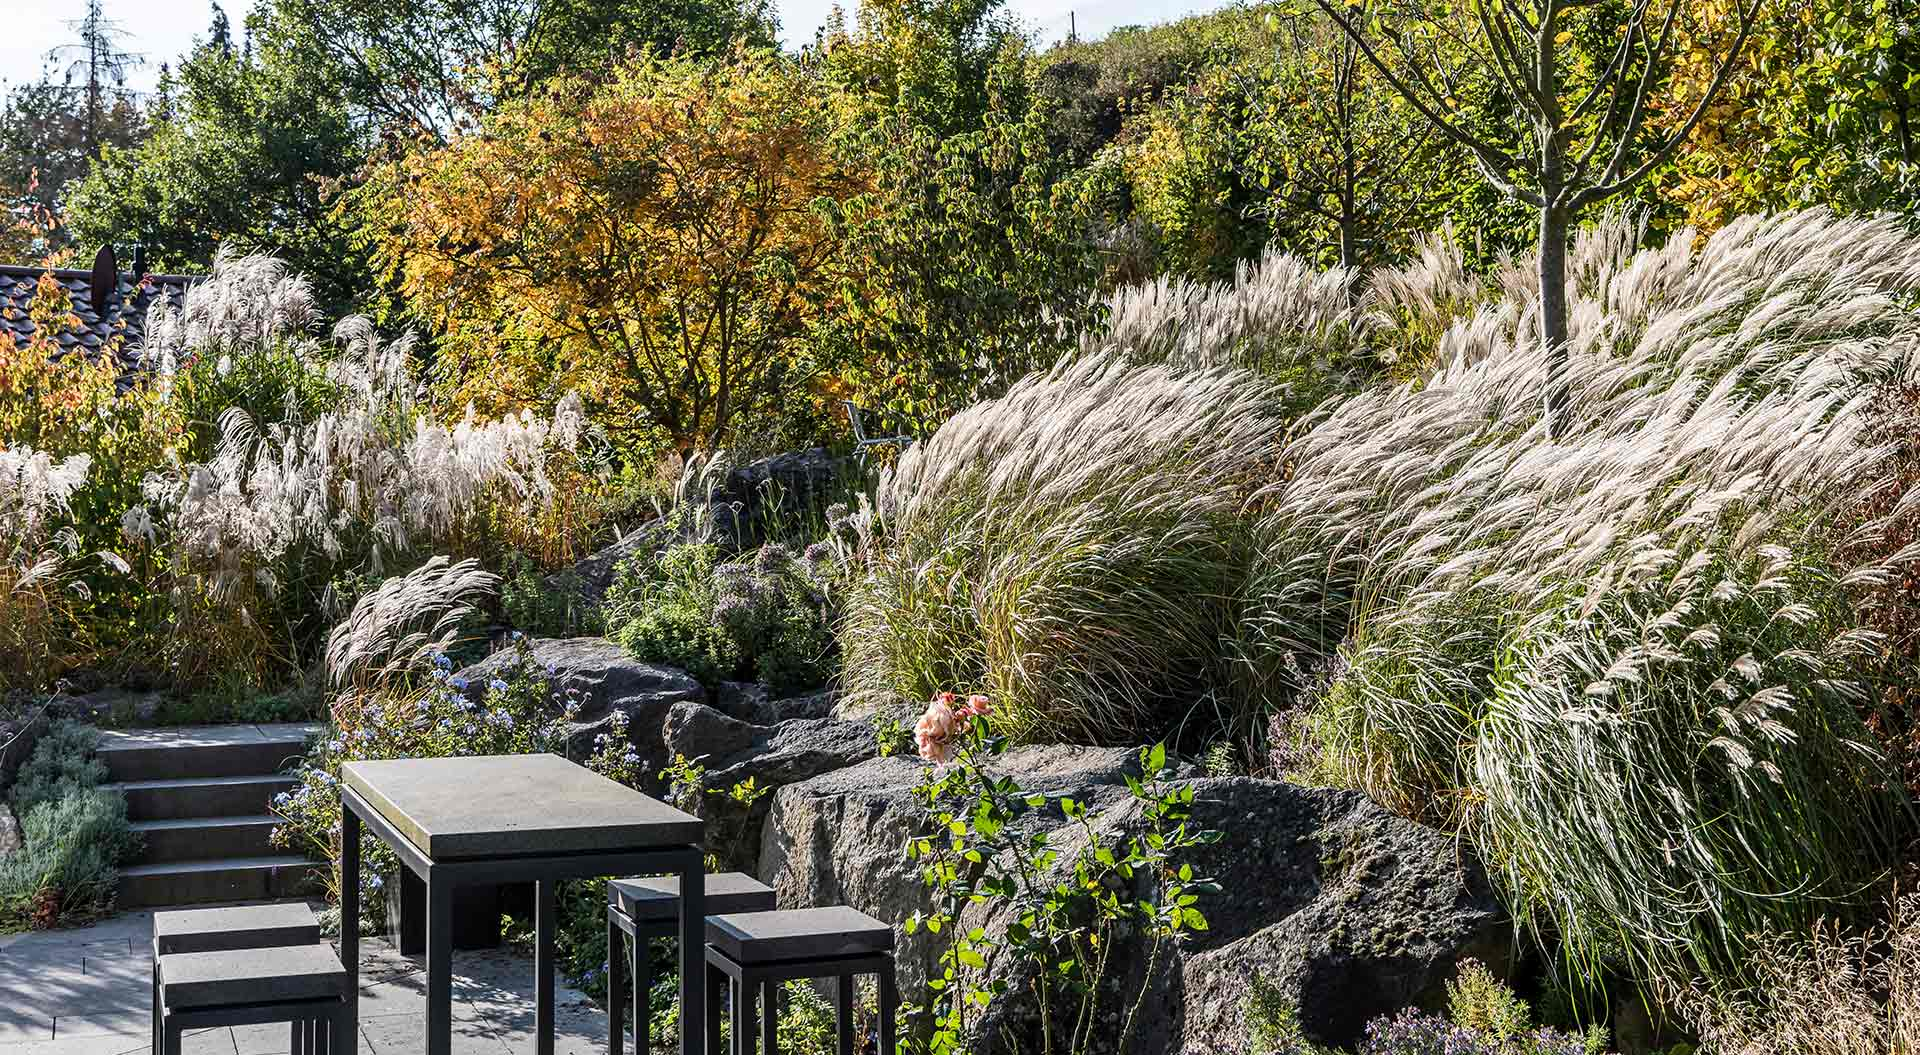 Seating on terrace between natural stones and bushes